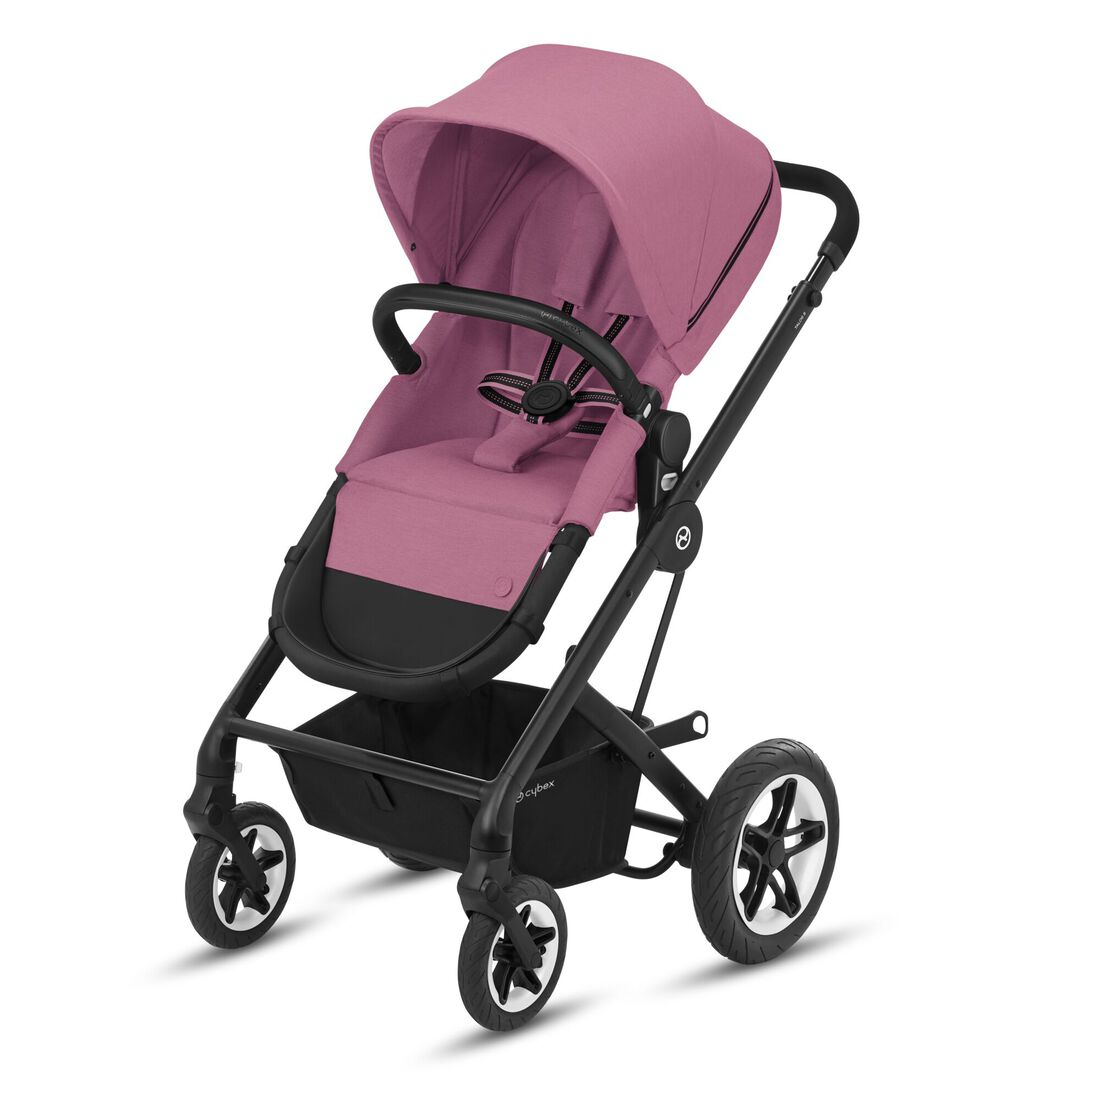 CYBEX Talos S 2-in-1 - Magnolia Pink in Magnolia Pink large image number 1